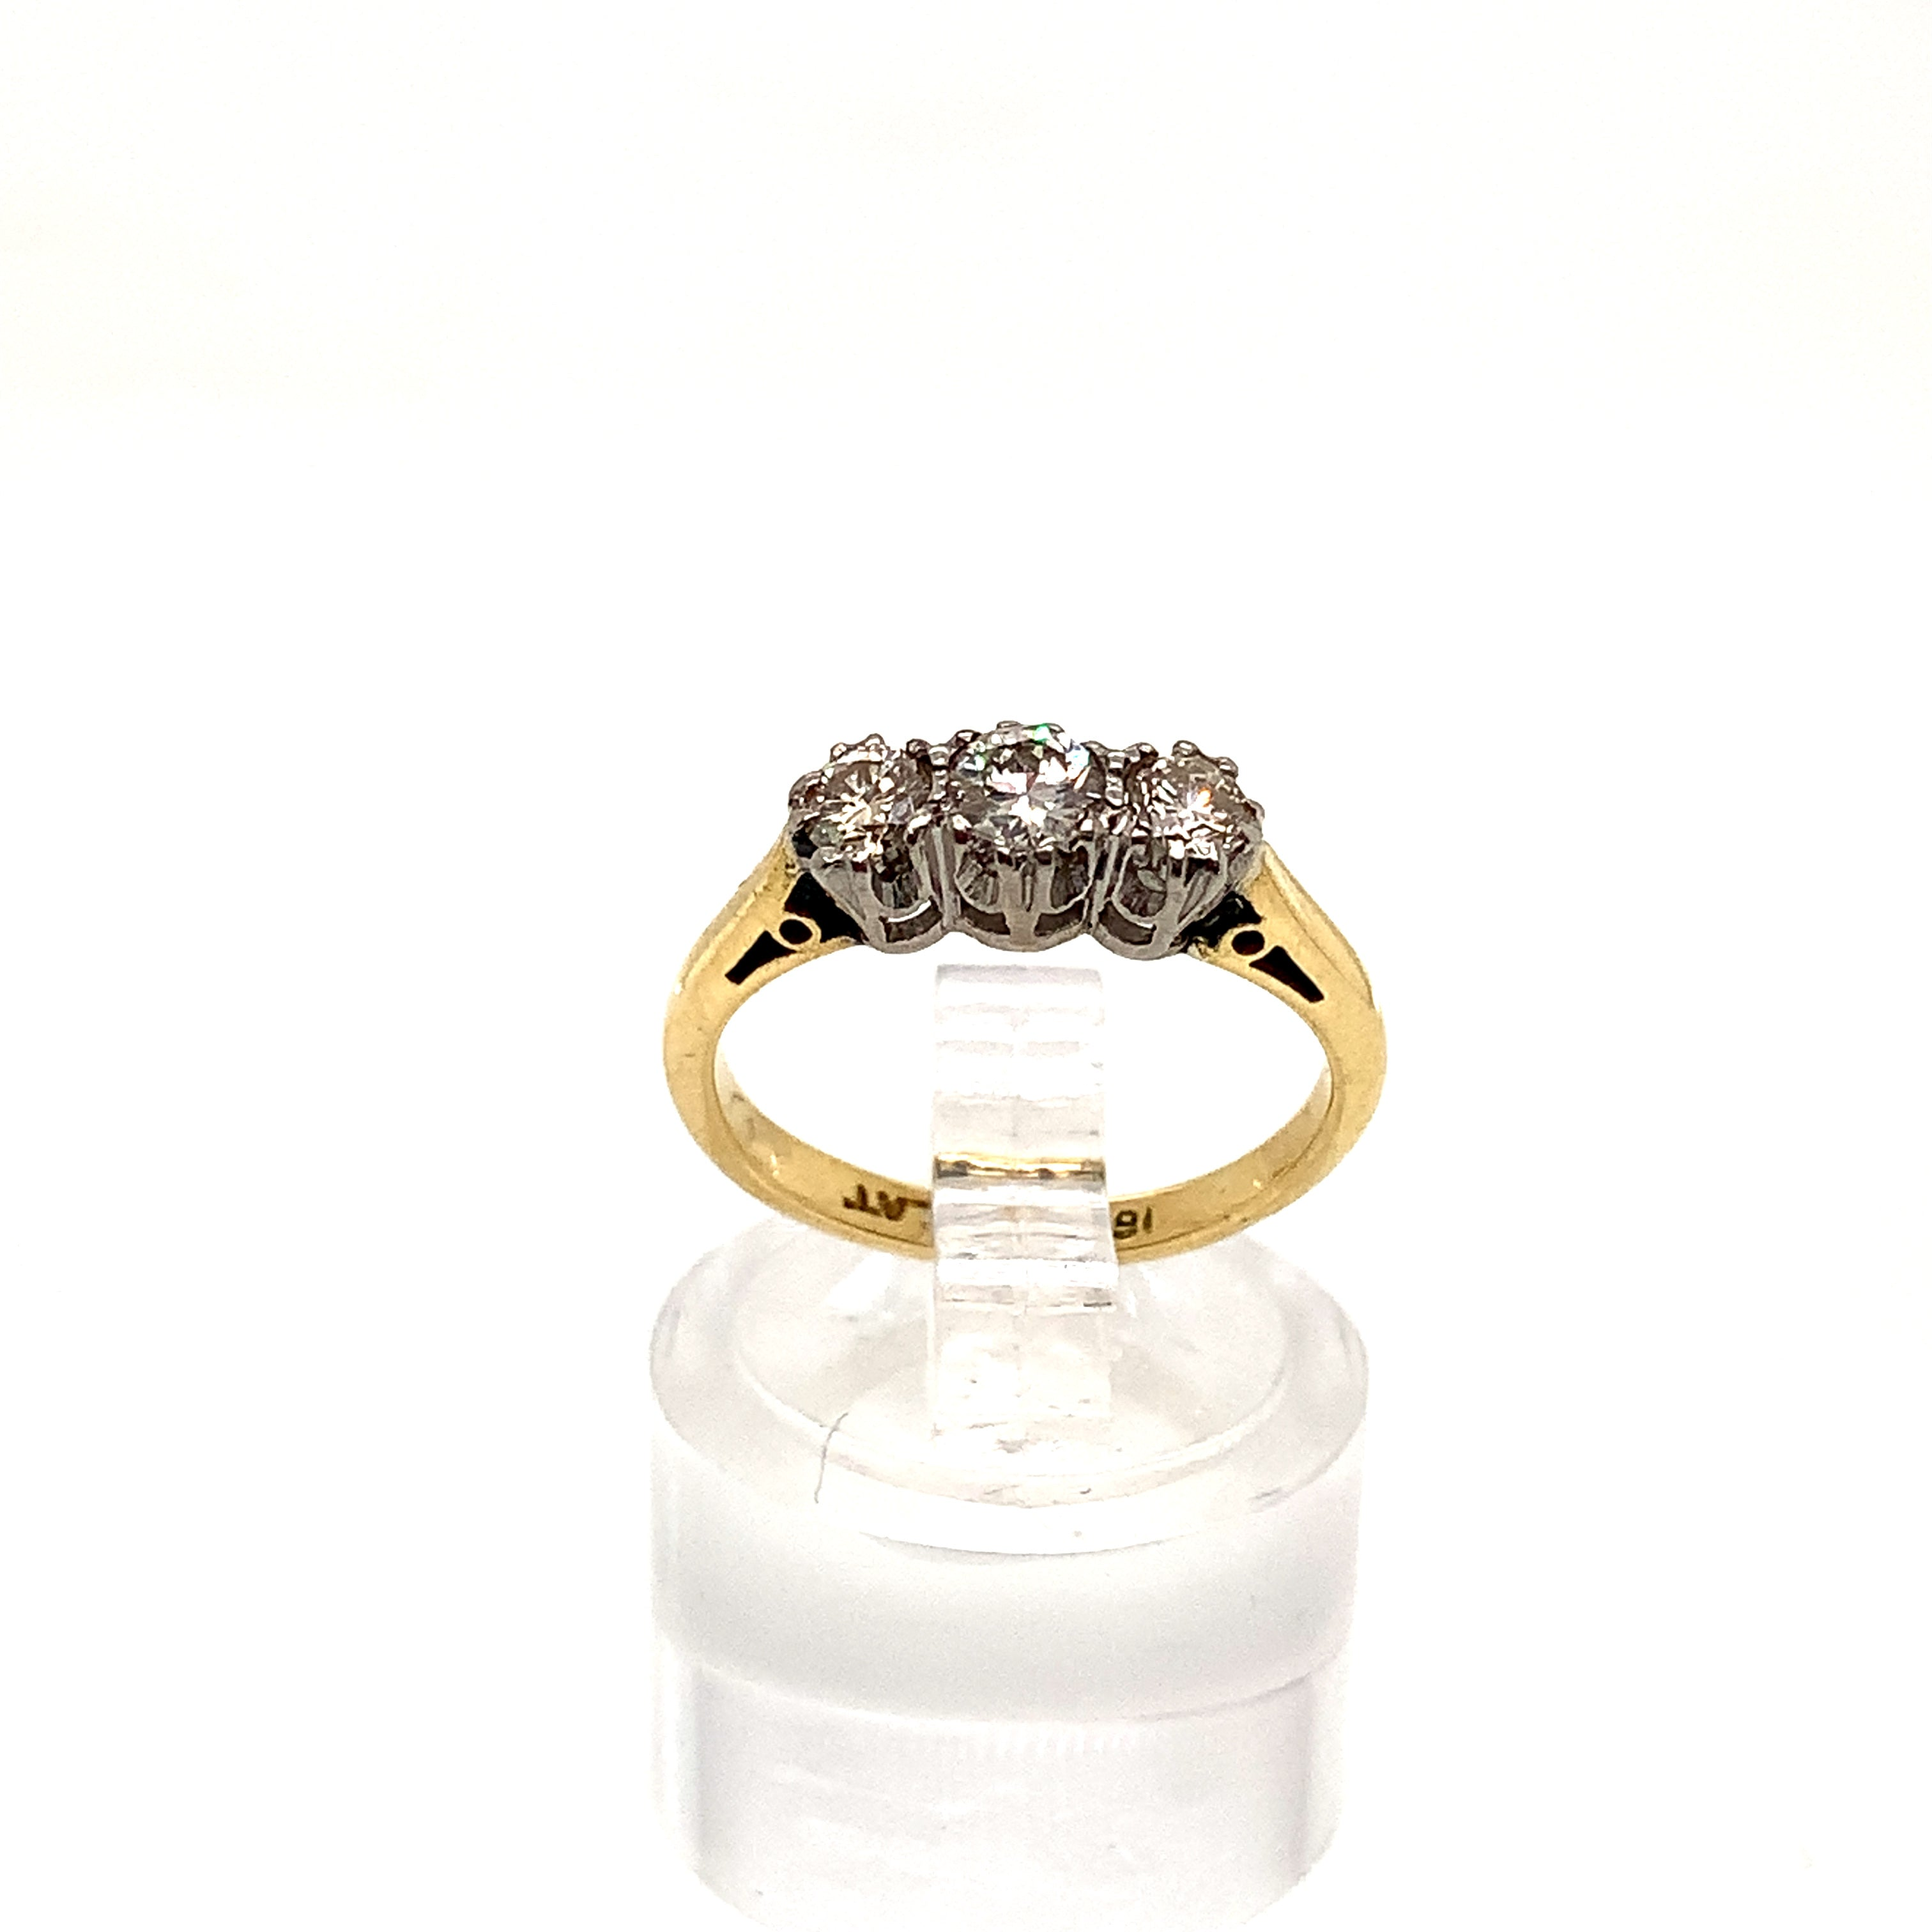 18ct Yellow Gold Graduated Trilogy Diamond Ring with Platinum Head